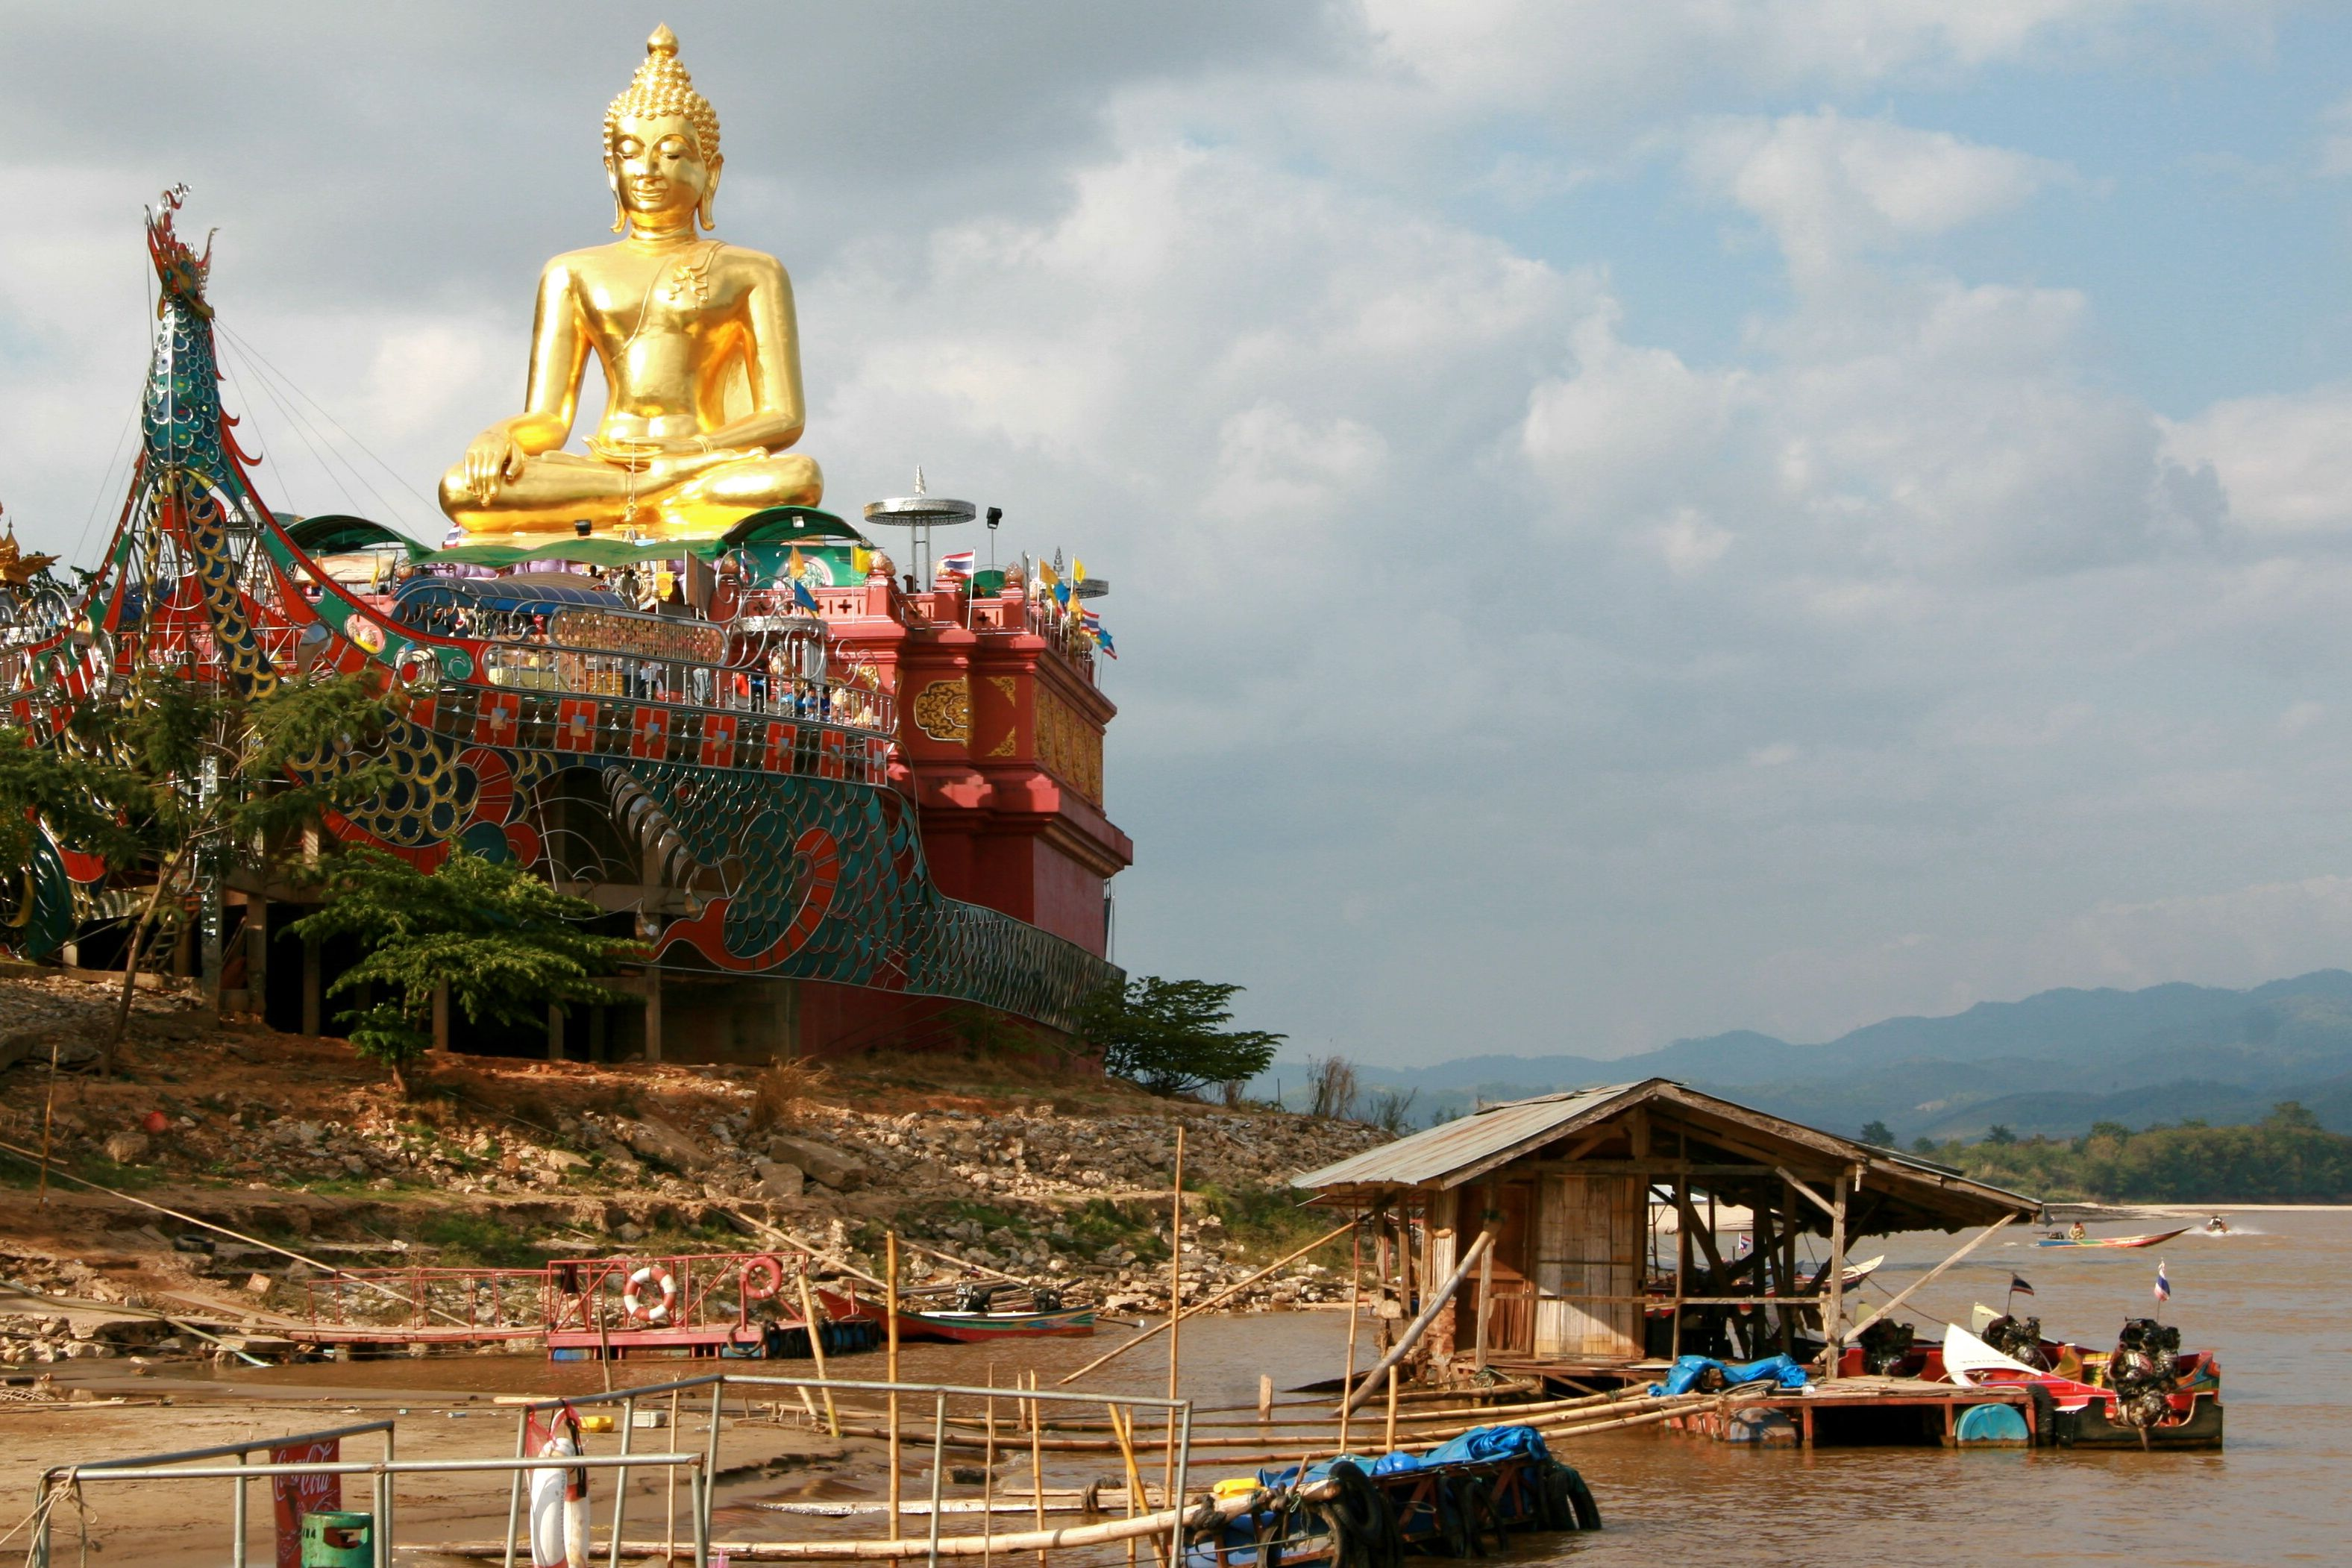 The Golden Buddha located in the Southeast Asia's Golden Triangle | Pinterest